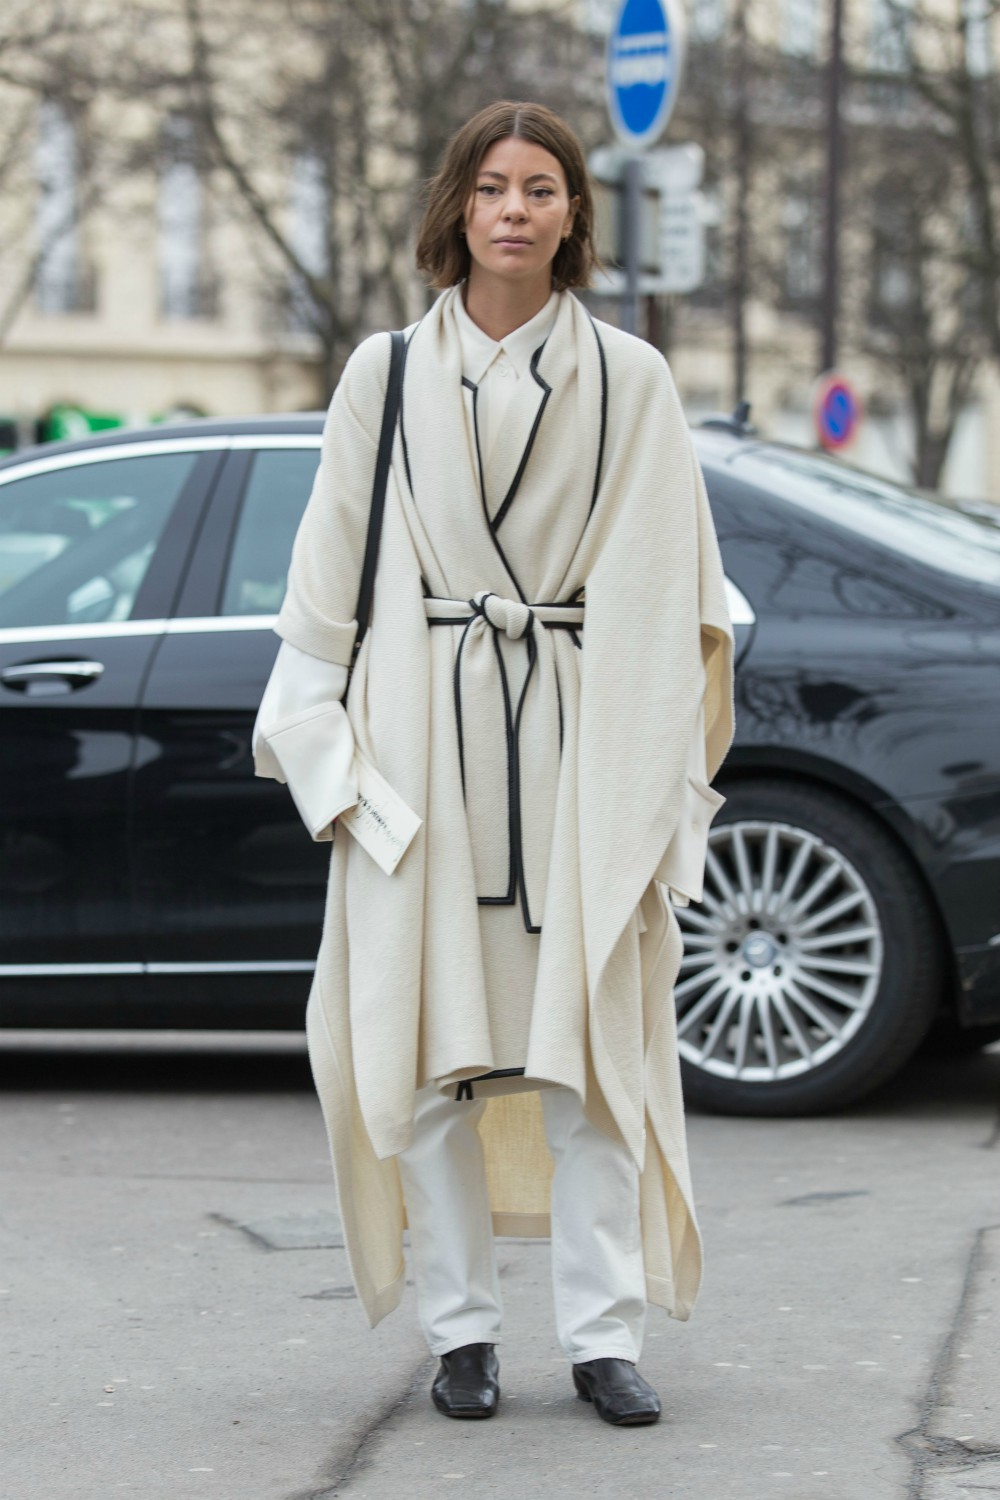 Fashion continues down the casualization road as styles typically only seen inside the home step out onto center stage. Following the pajama trend comes the advent of robes and wrap-style outwear as consumers embrace comfort on the fashion front. People searched for robe-inspired silhouettes 689 percent more in 2018 than in the previous year, according to Pinterest.